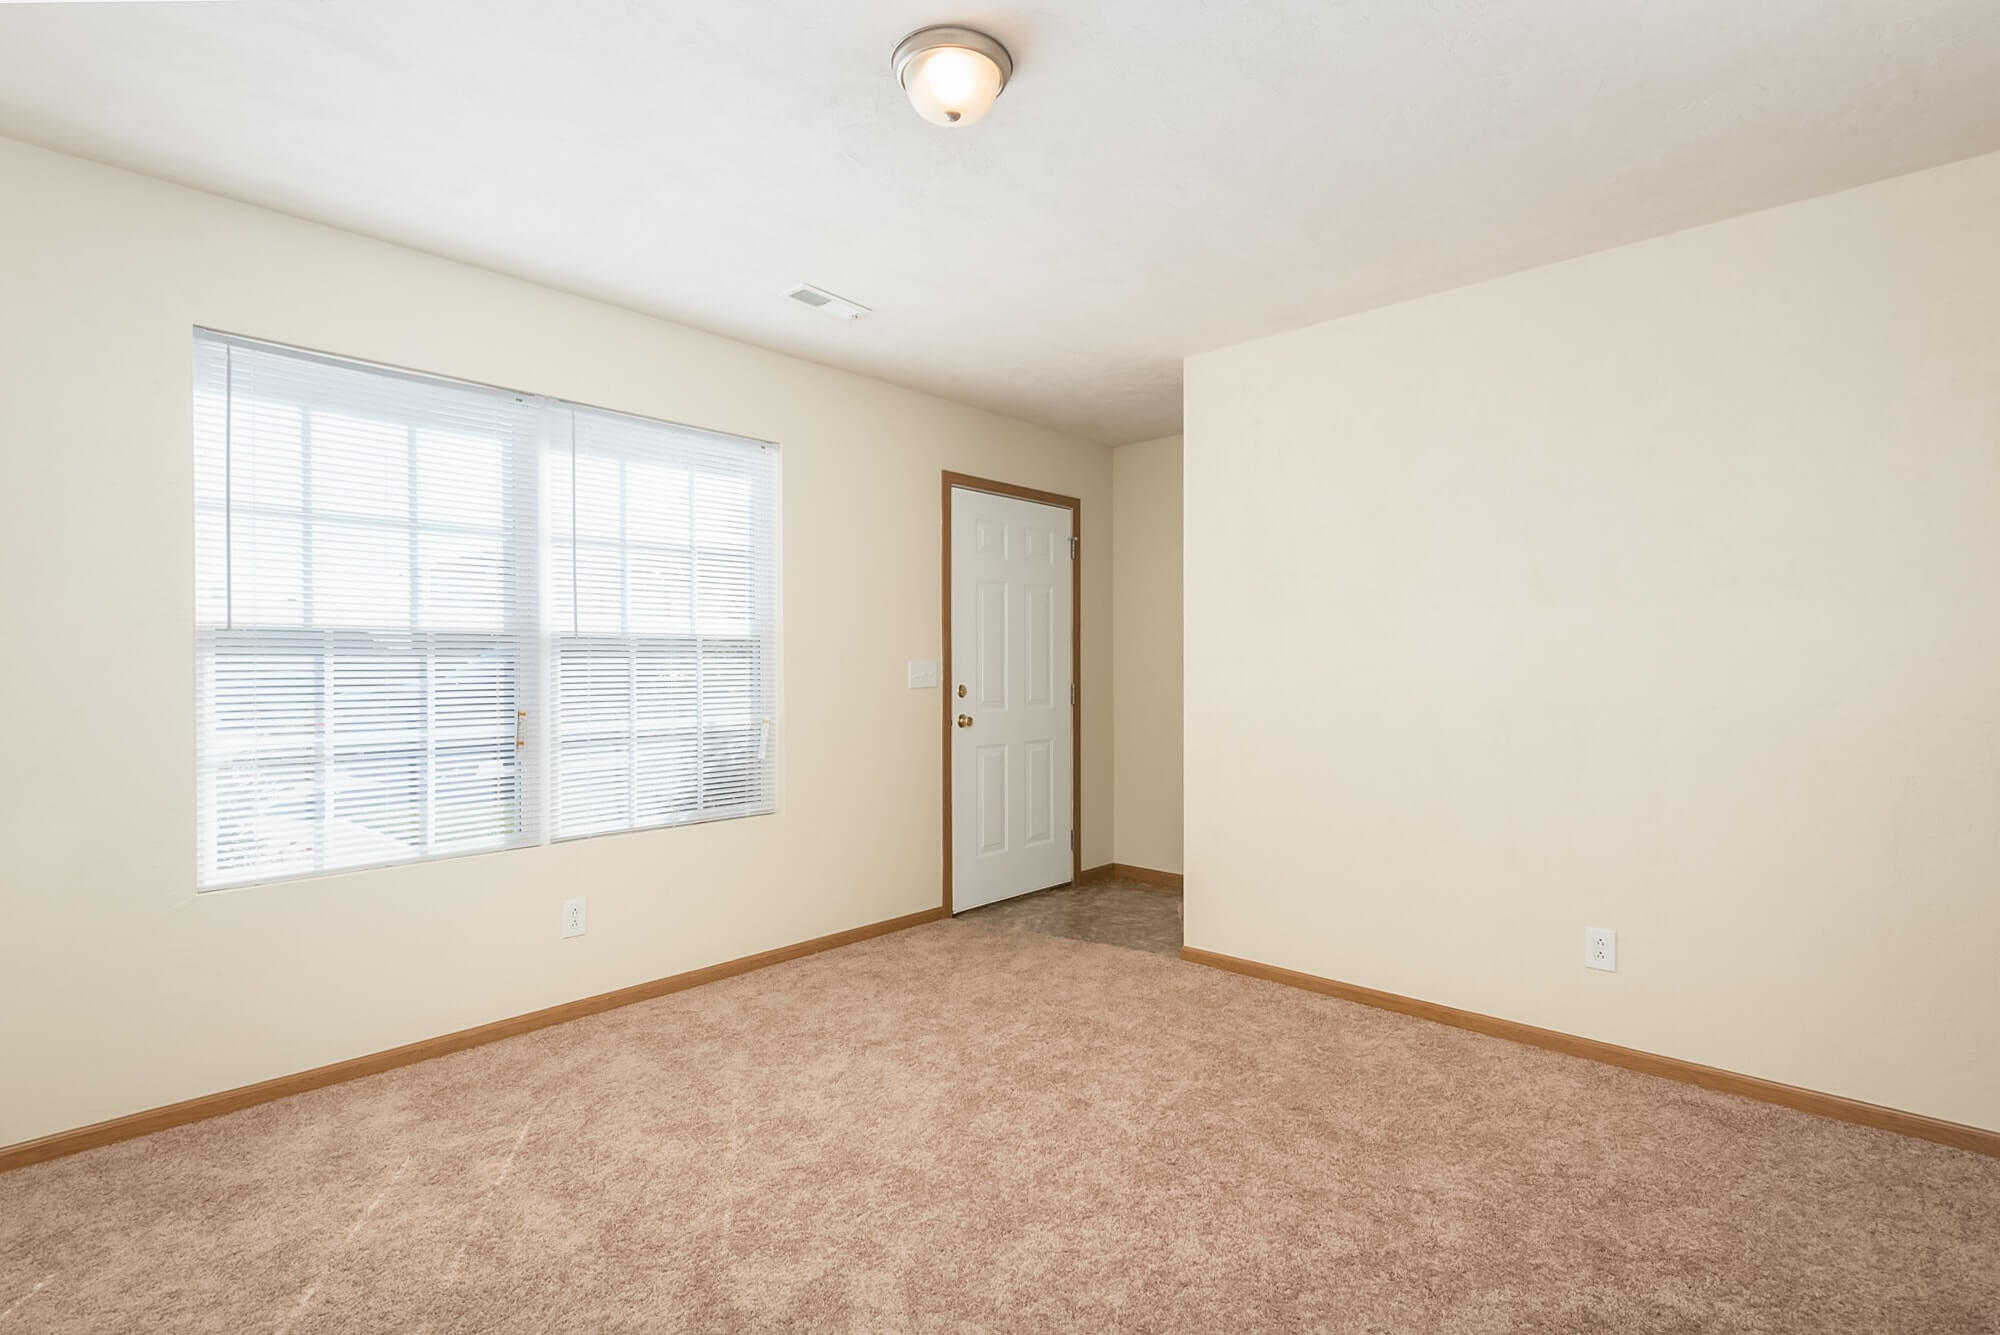 Three Bedroom Rental In Lebanon, Illinois